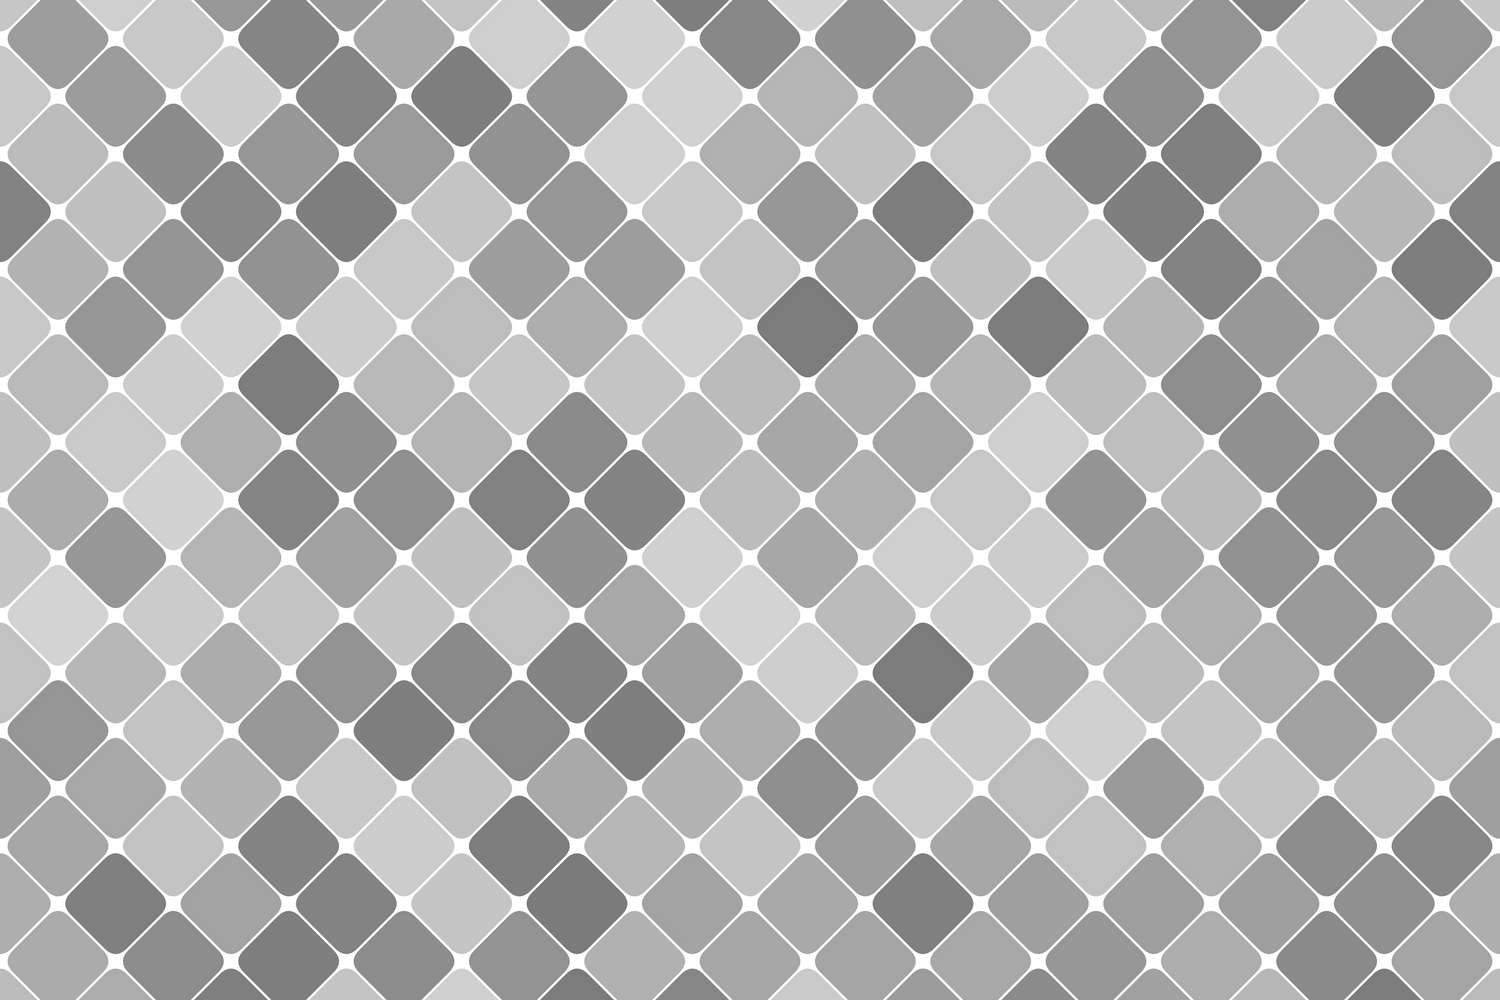 16 Seamless Square Backgrounds AI, EPS, JPG 5000x5000 example image 12